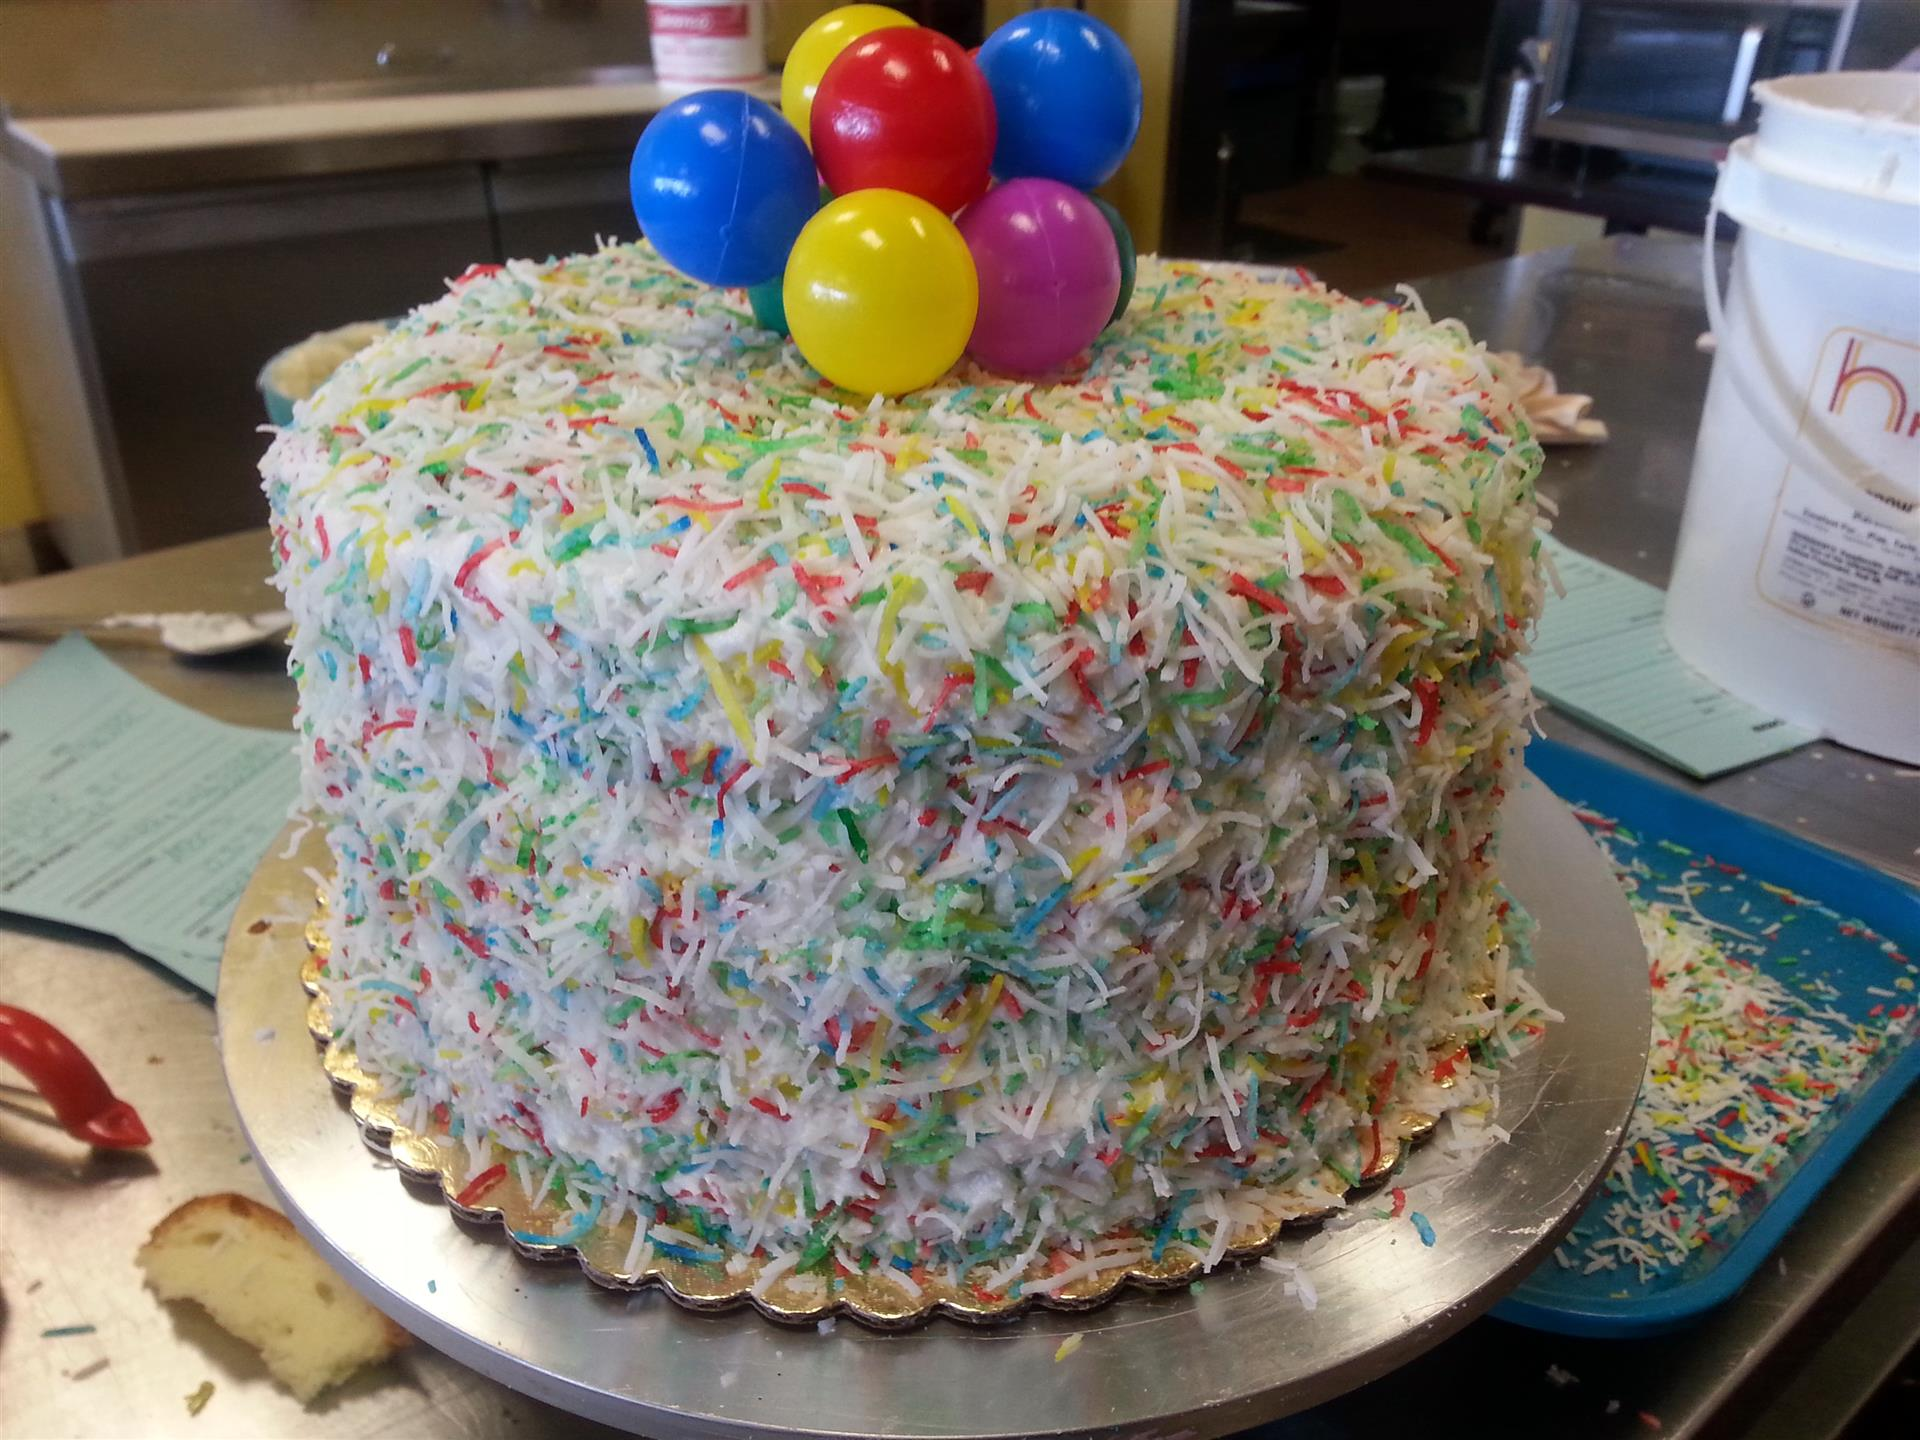 a birthday cake covered in sprinkled and balloons on top